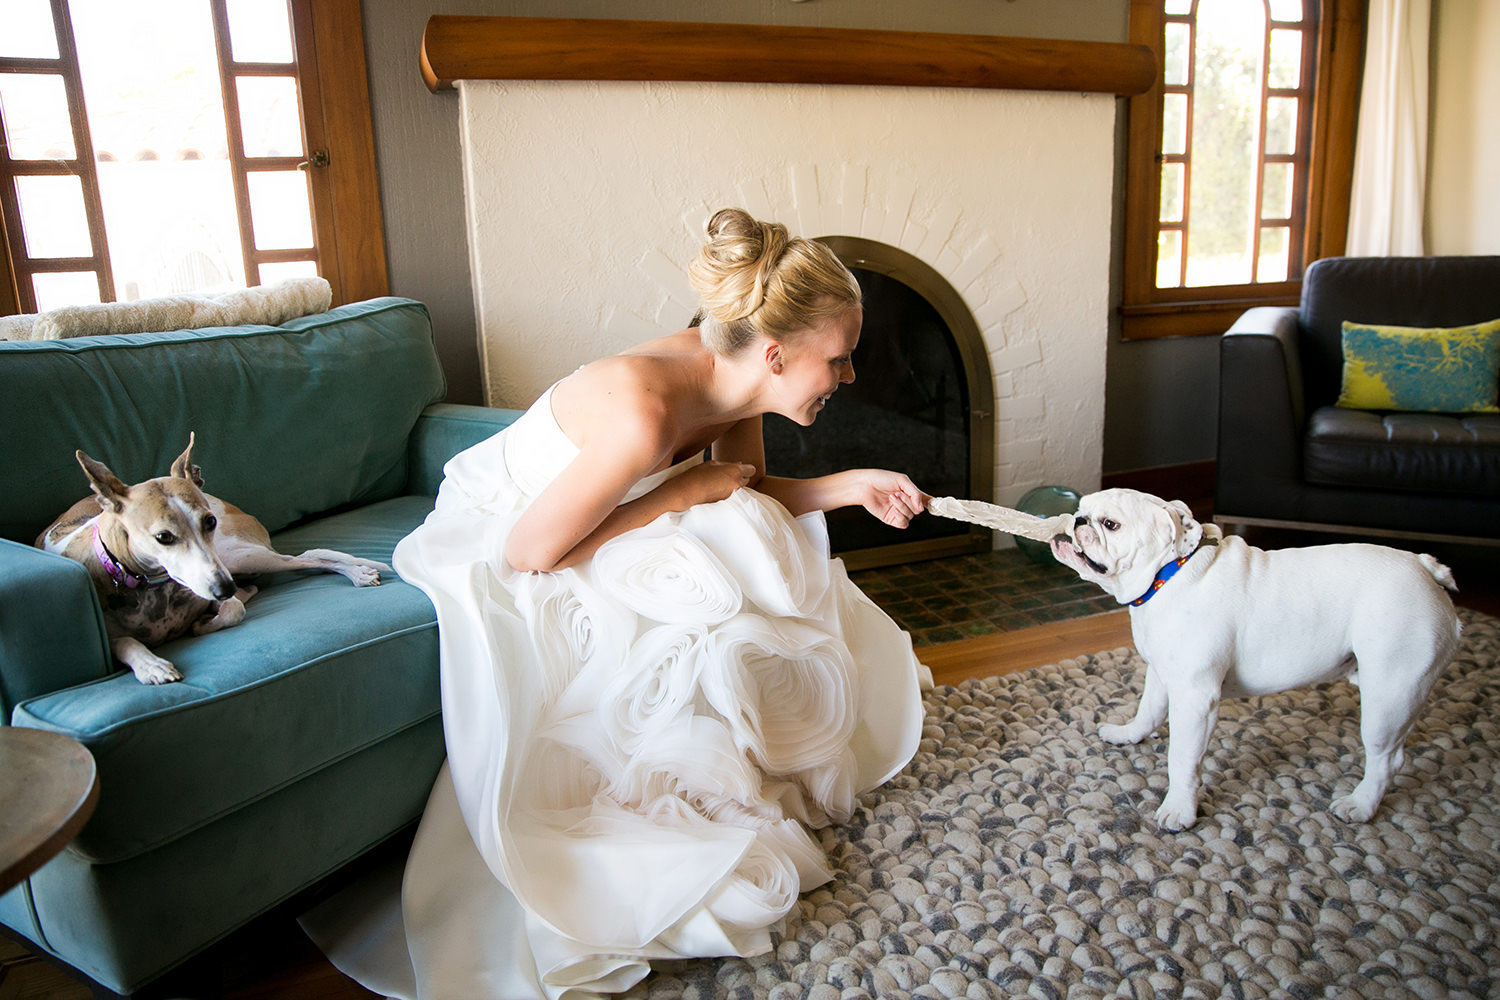 Cute moment between bride and her english bulldog.